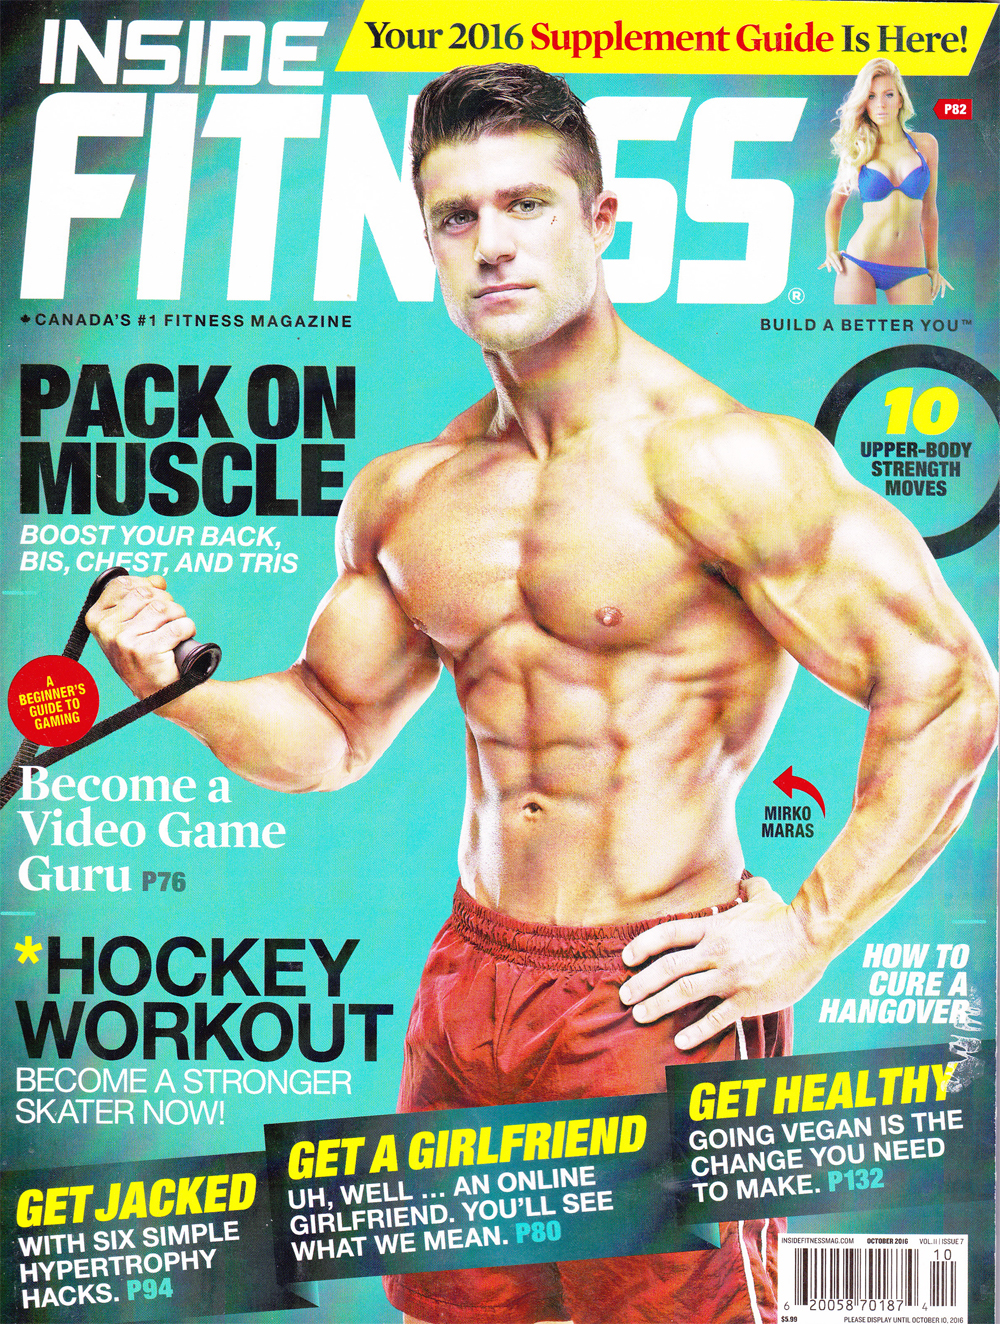 Inside Fitness Cover, October 2016